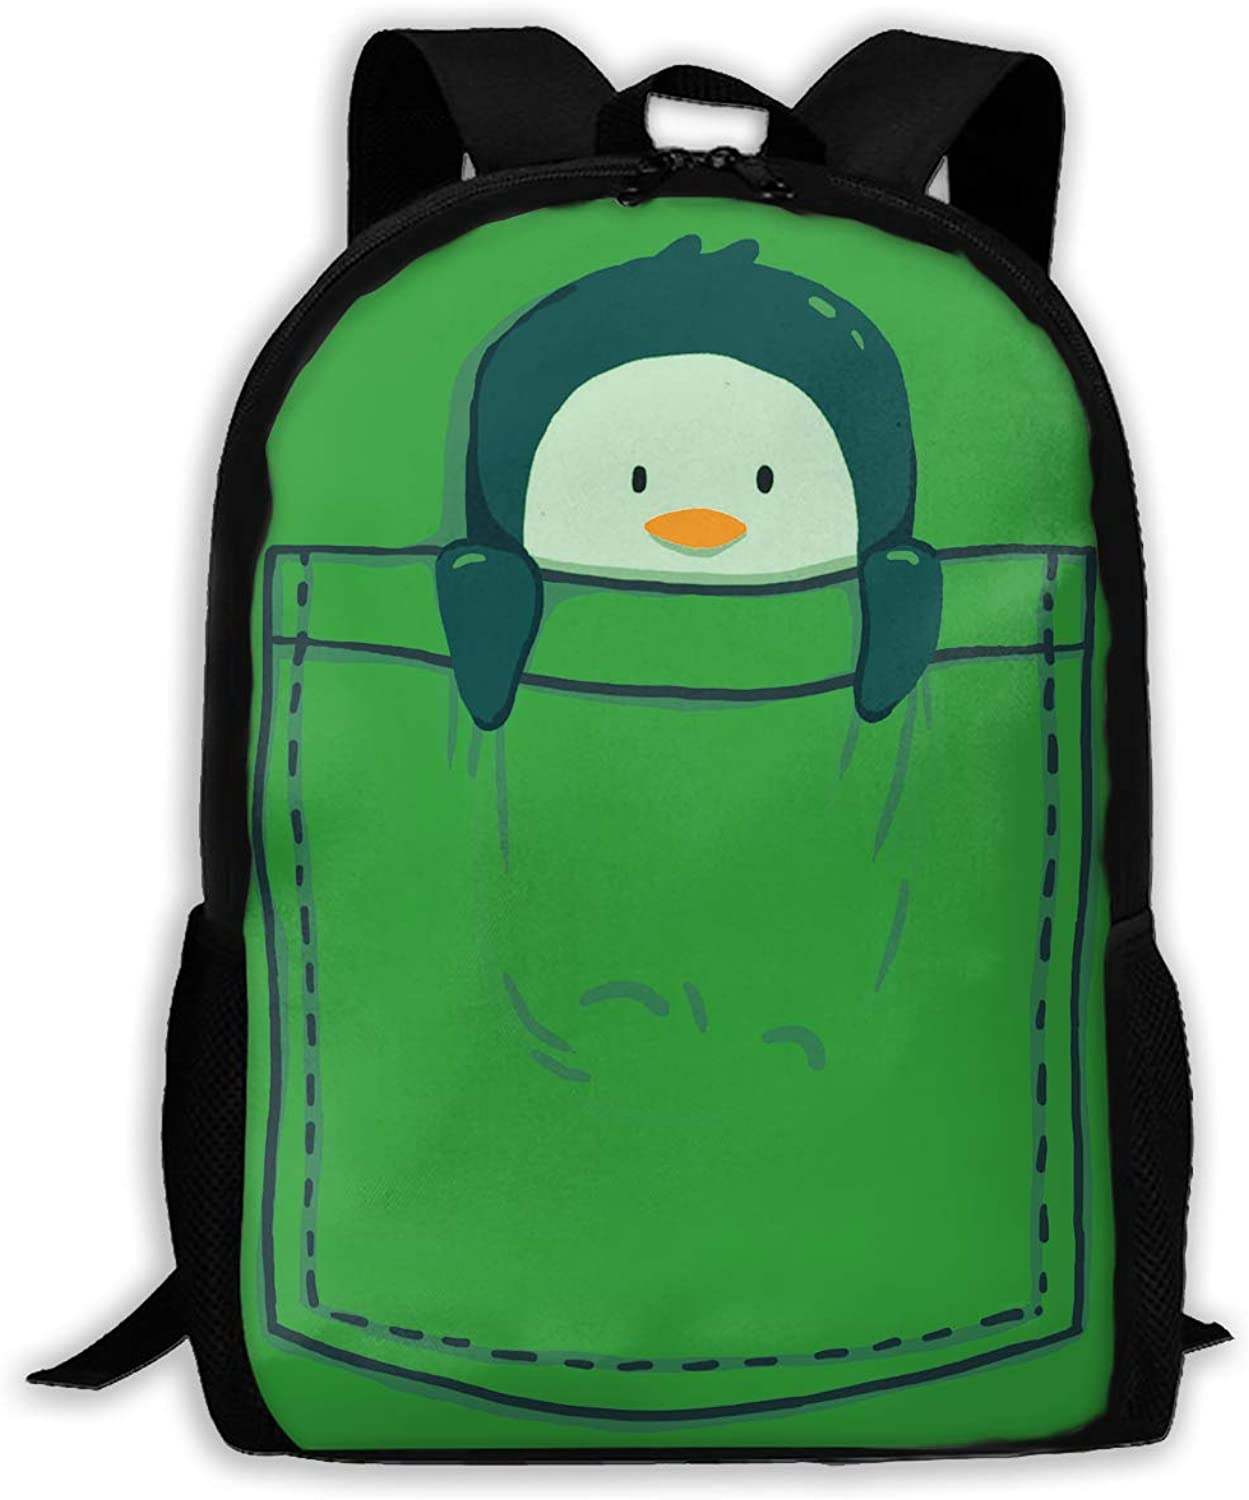 c58a34764ee5 Pocket Penguin Laptop Bags Shoulder Bag College Daypack for Unisex ...